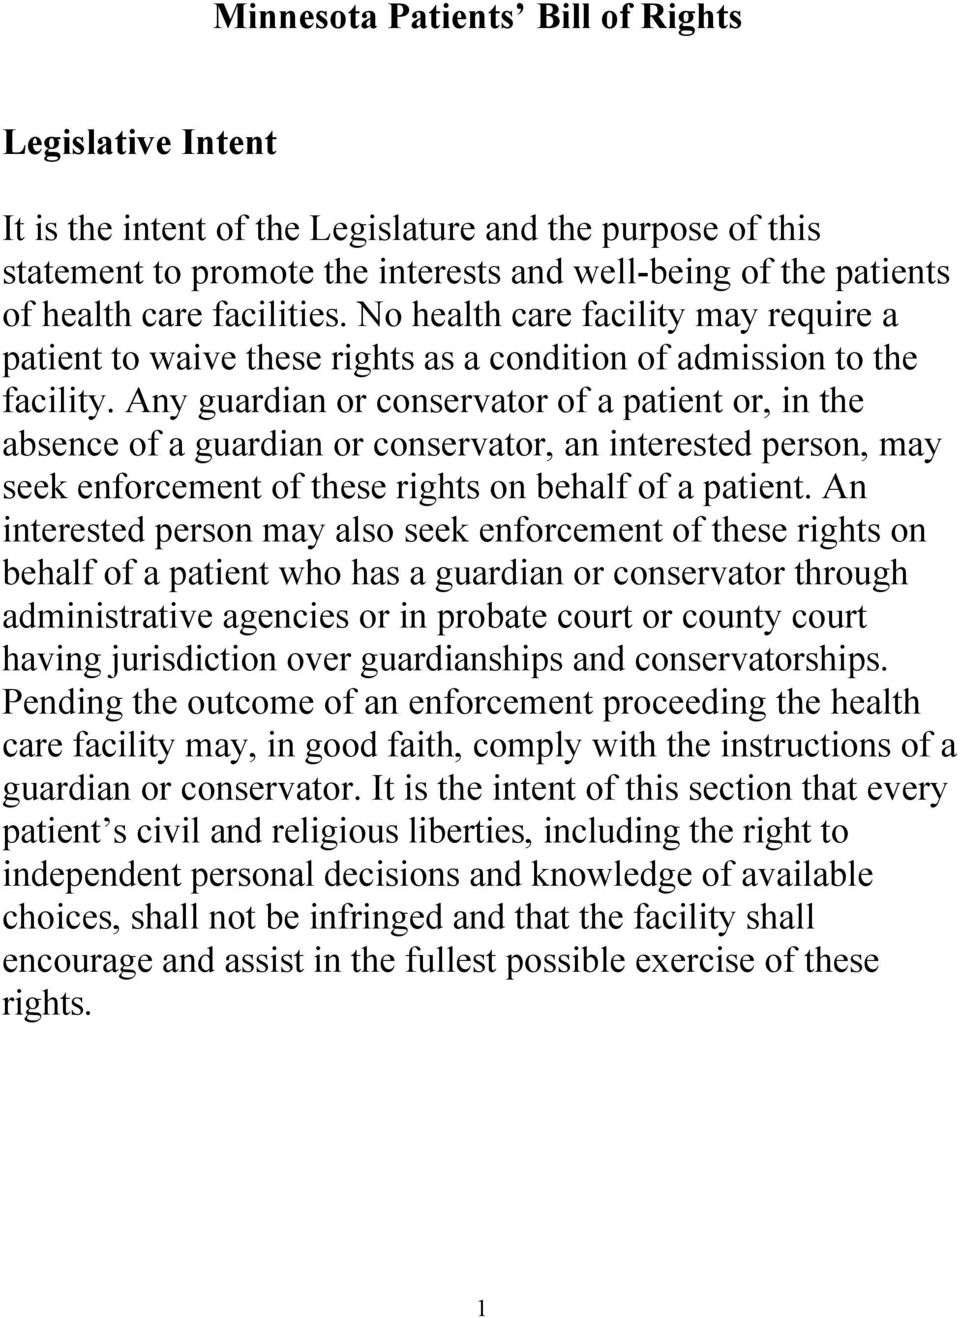 Any guardian or conservator of a patient or, in the absence of a guardian or conservator, an interested person, may seek enforcement of these rights on behalf of a patient.